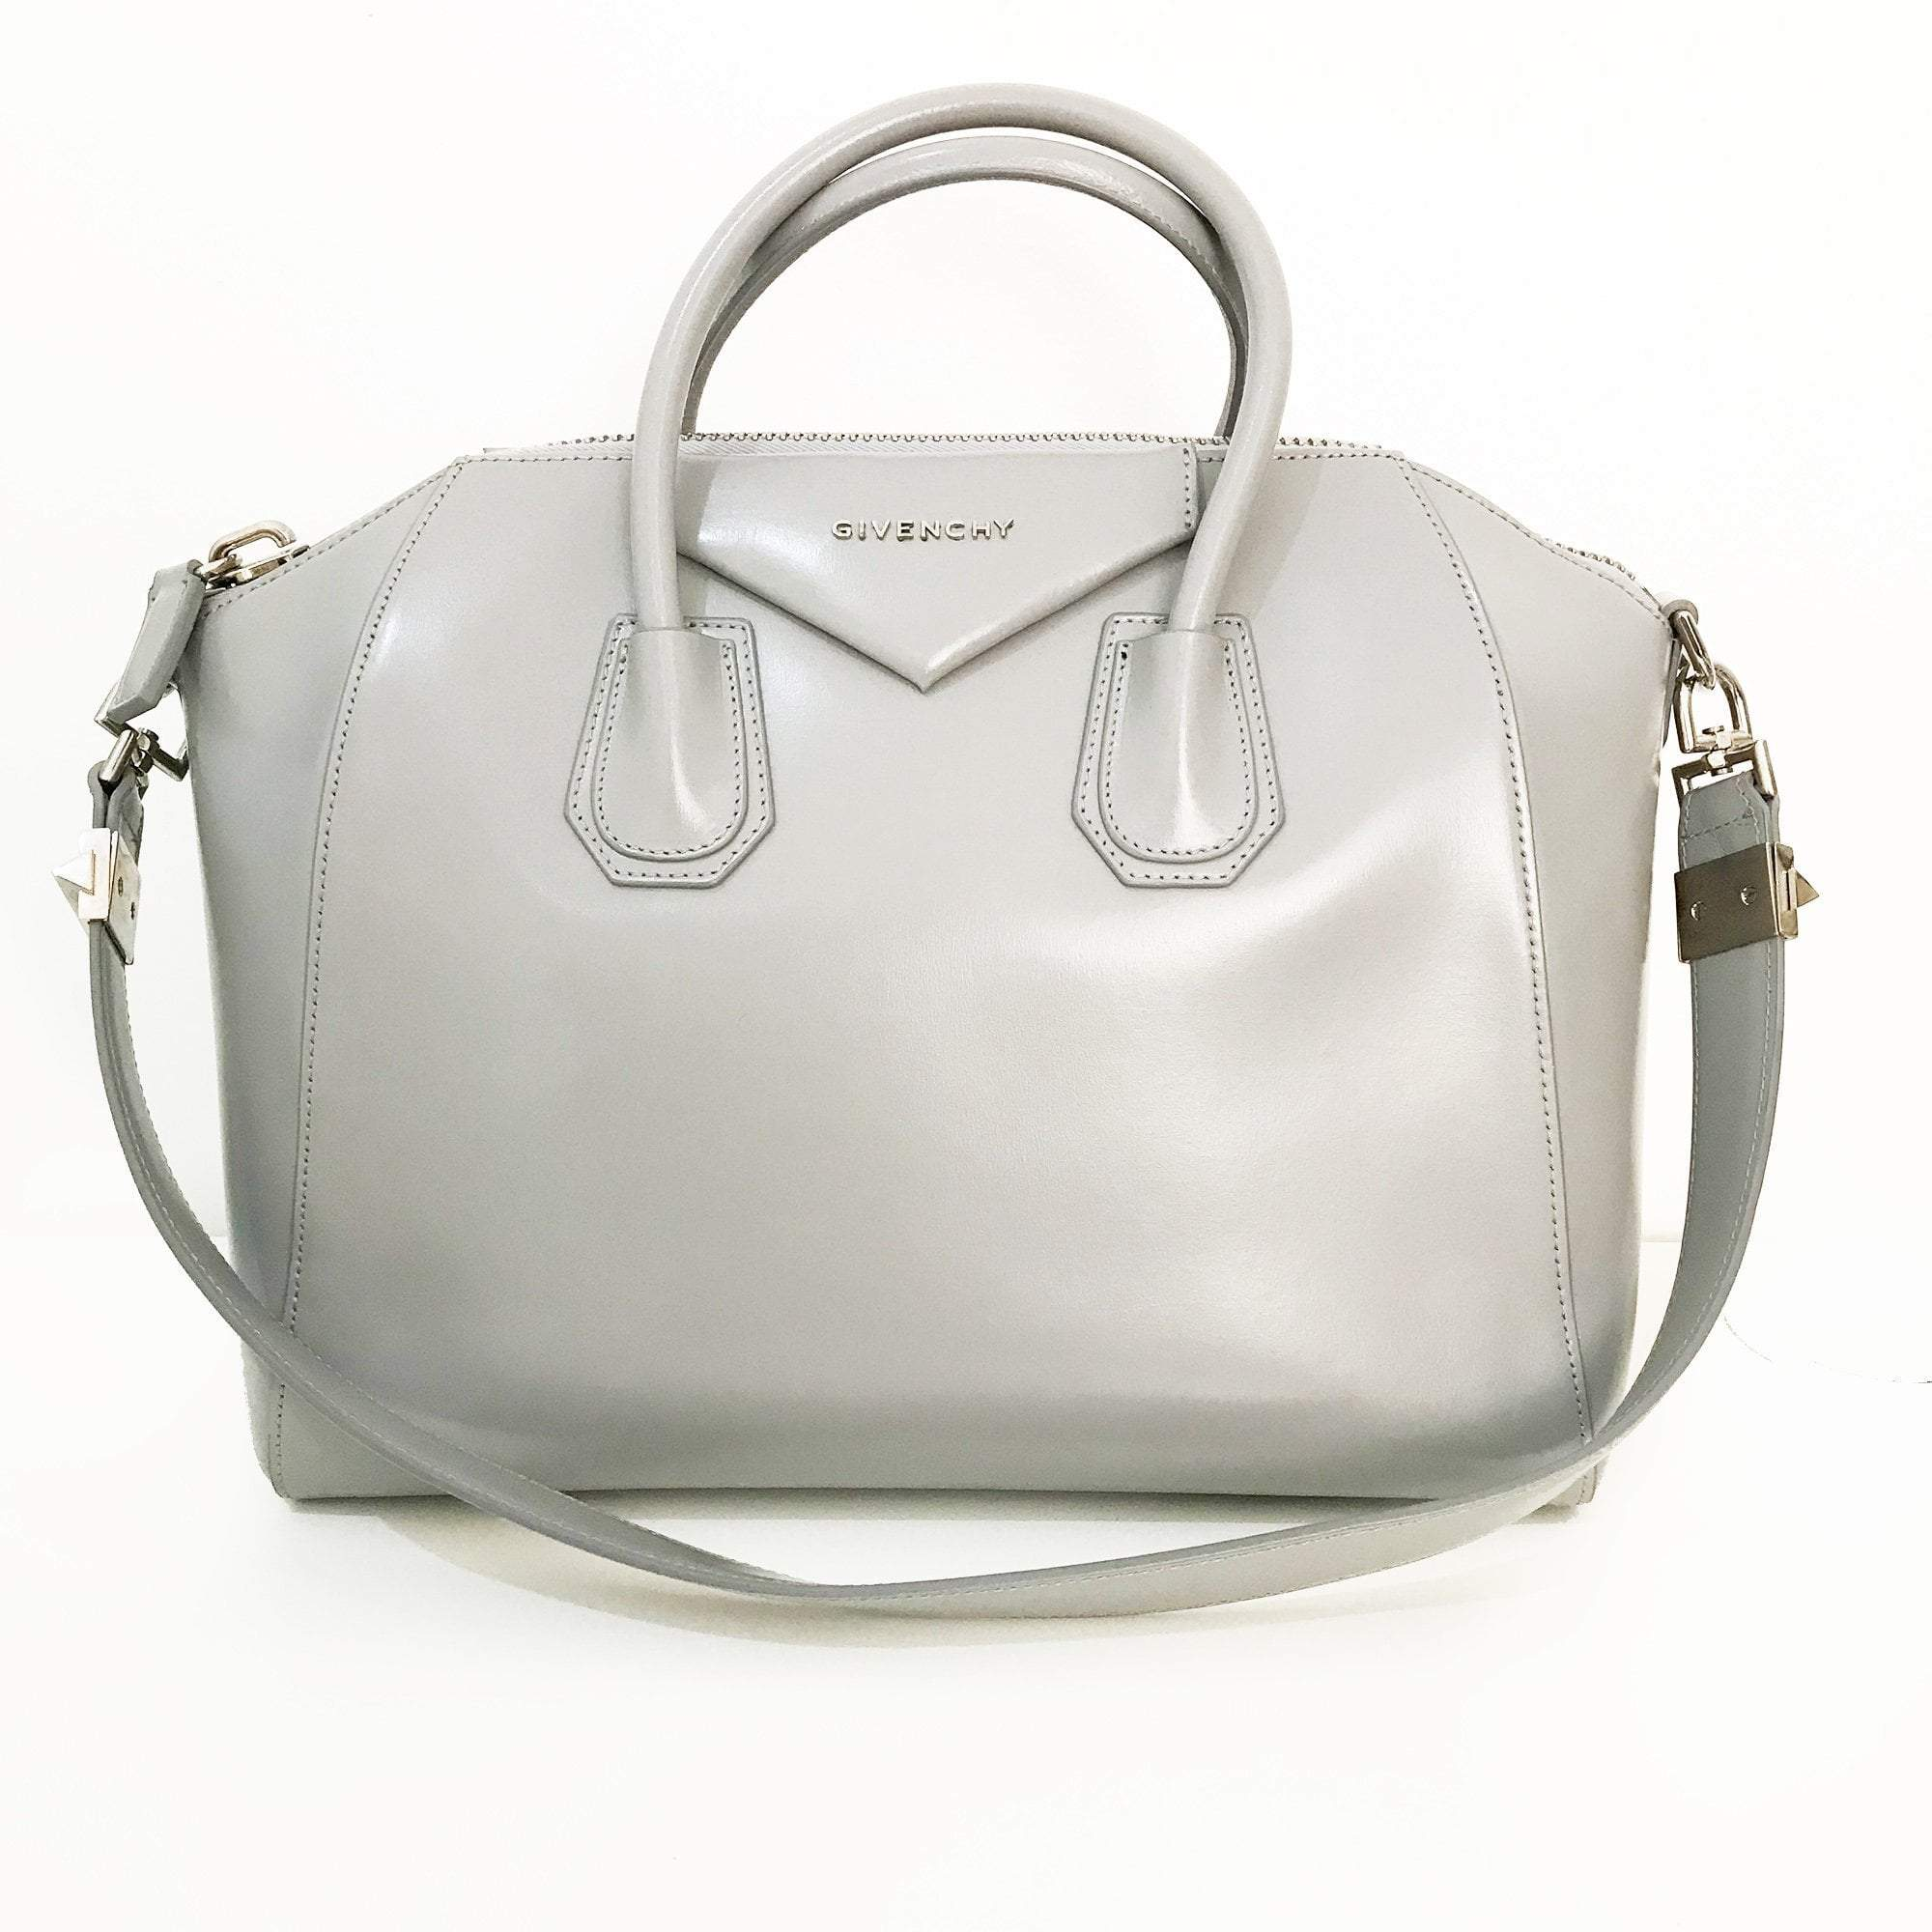 Givenchy Grey Leather Medium Antigona Satchel